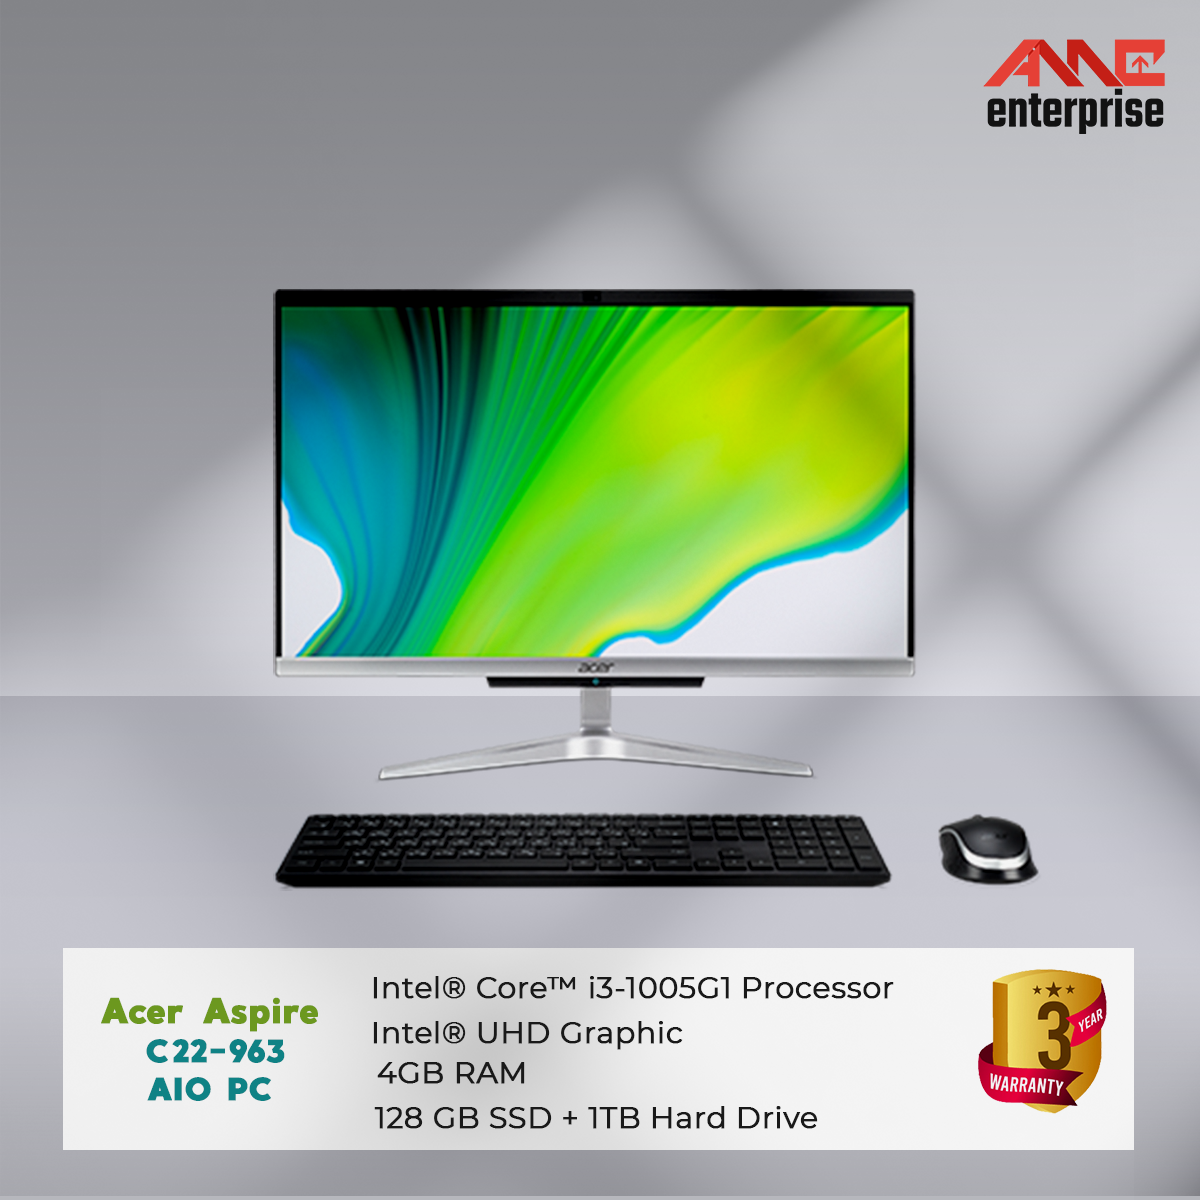 ACER Aspire C22-963 ALL-IN-ONE PC.png